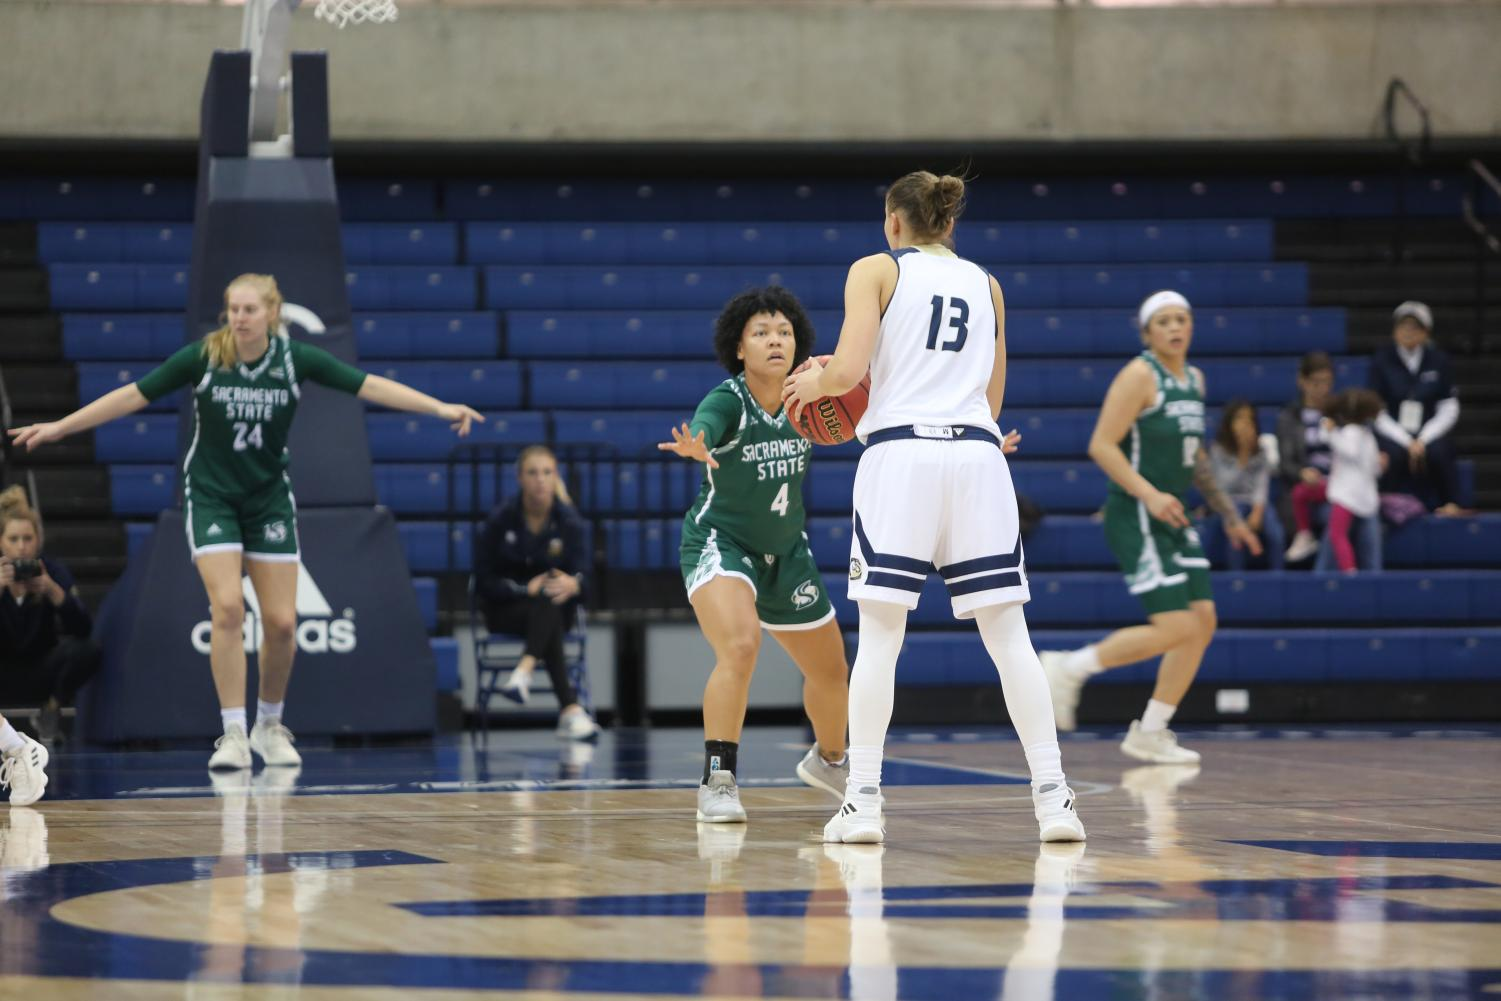 Sac State senior guard Camariah King guards UC Davis senior guard Katie Toole against the Aggies on Tuesday, Nov. 26 at The Pavilion. The Hornets lost 88-84 on the road at Seattle University on Friday.